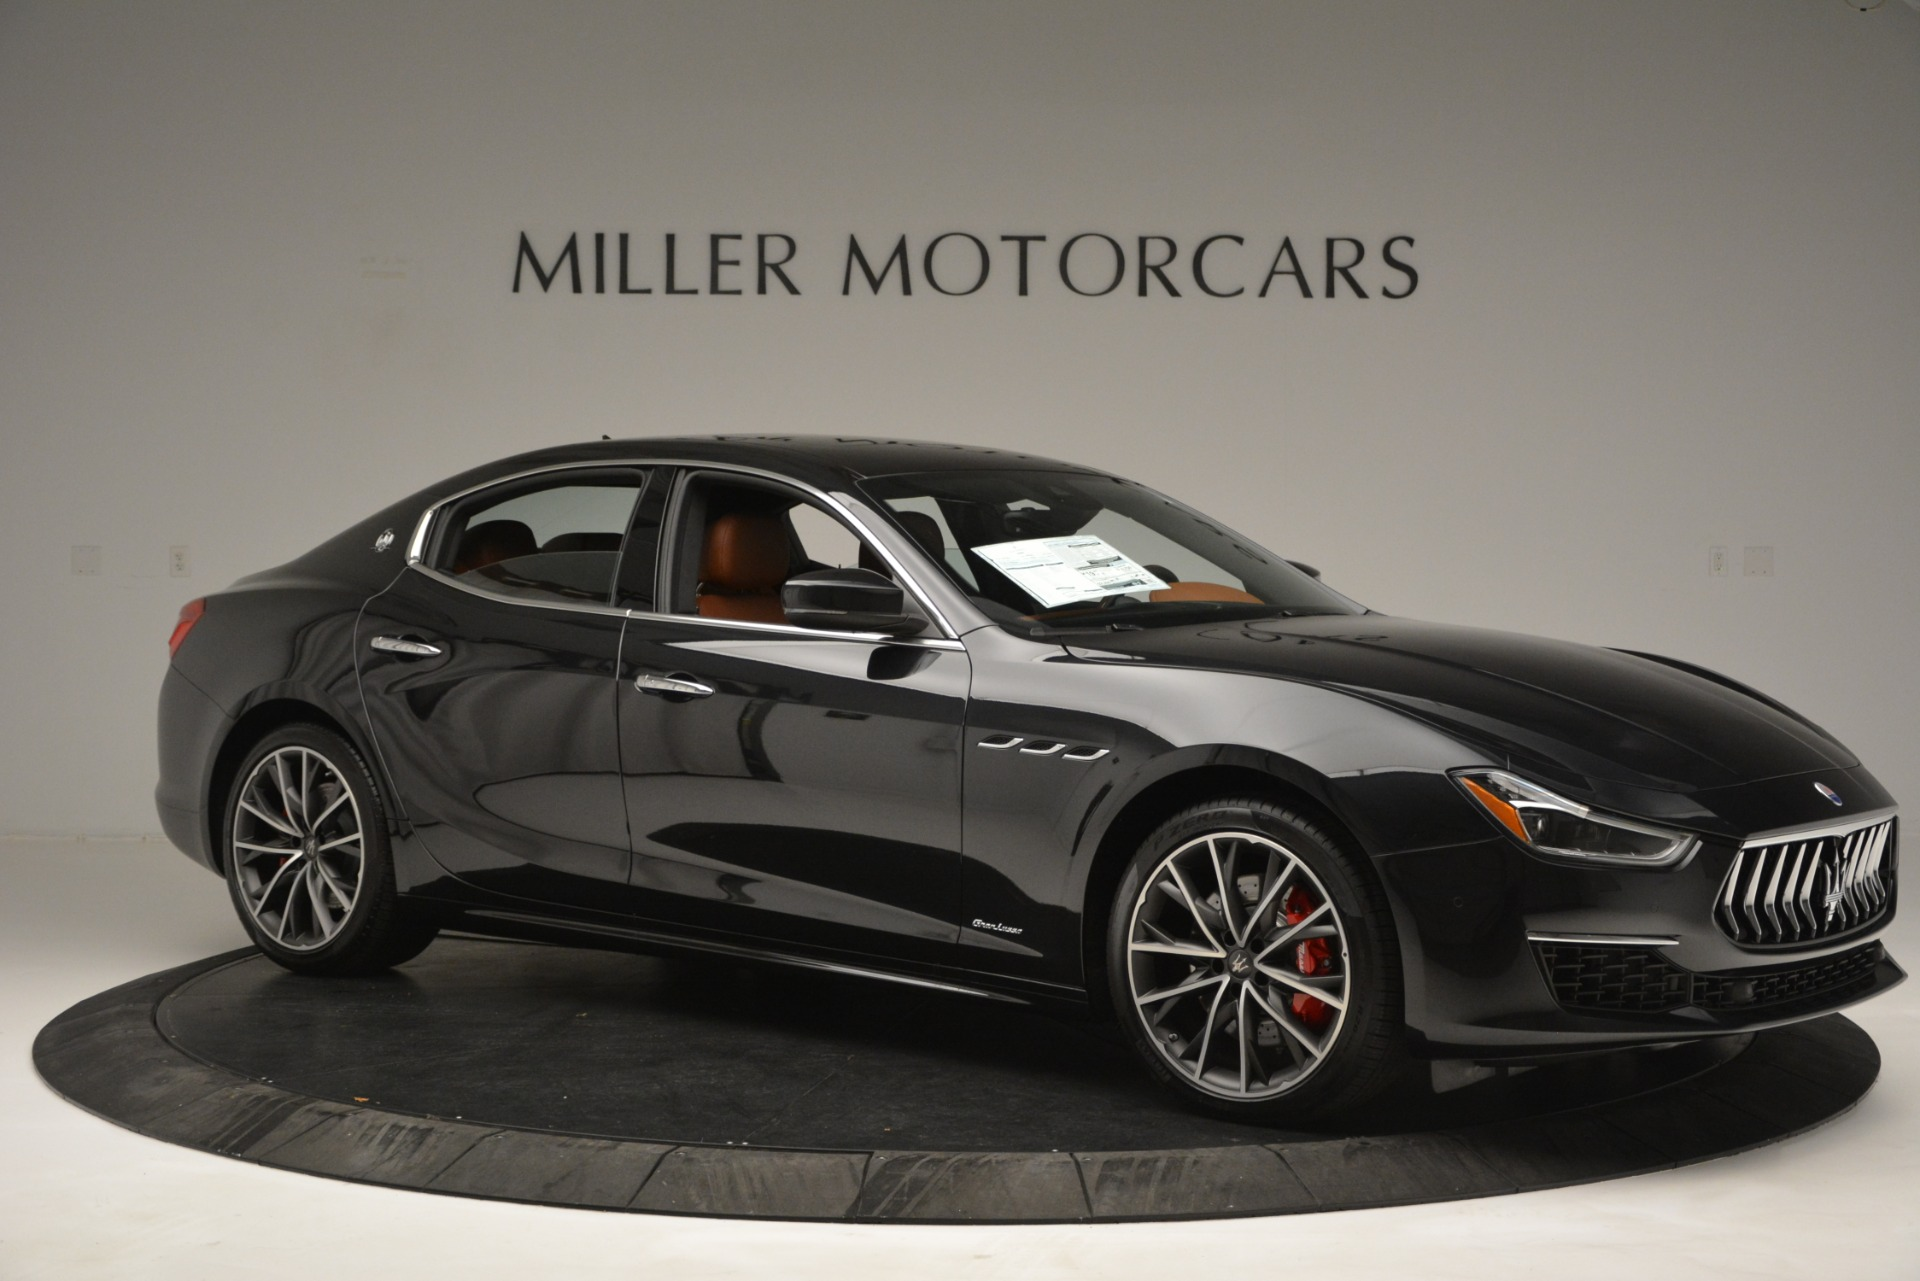 New 2019 Maserati Ghibli S Q4 GranLusso For Sale In Westport, CT 2589_p10